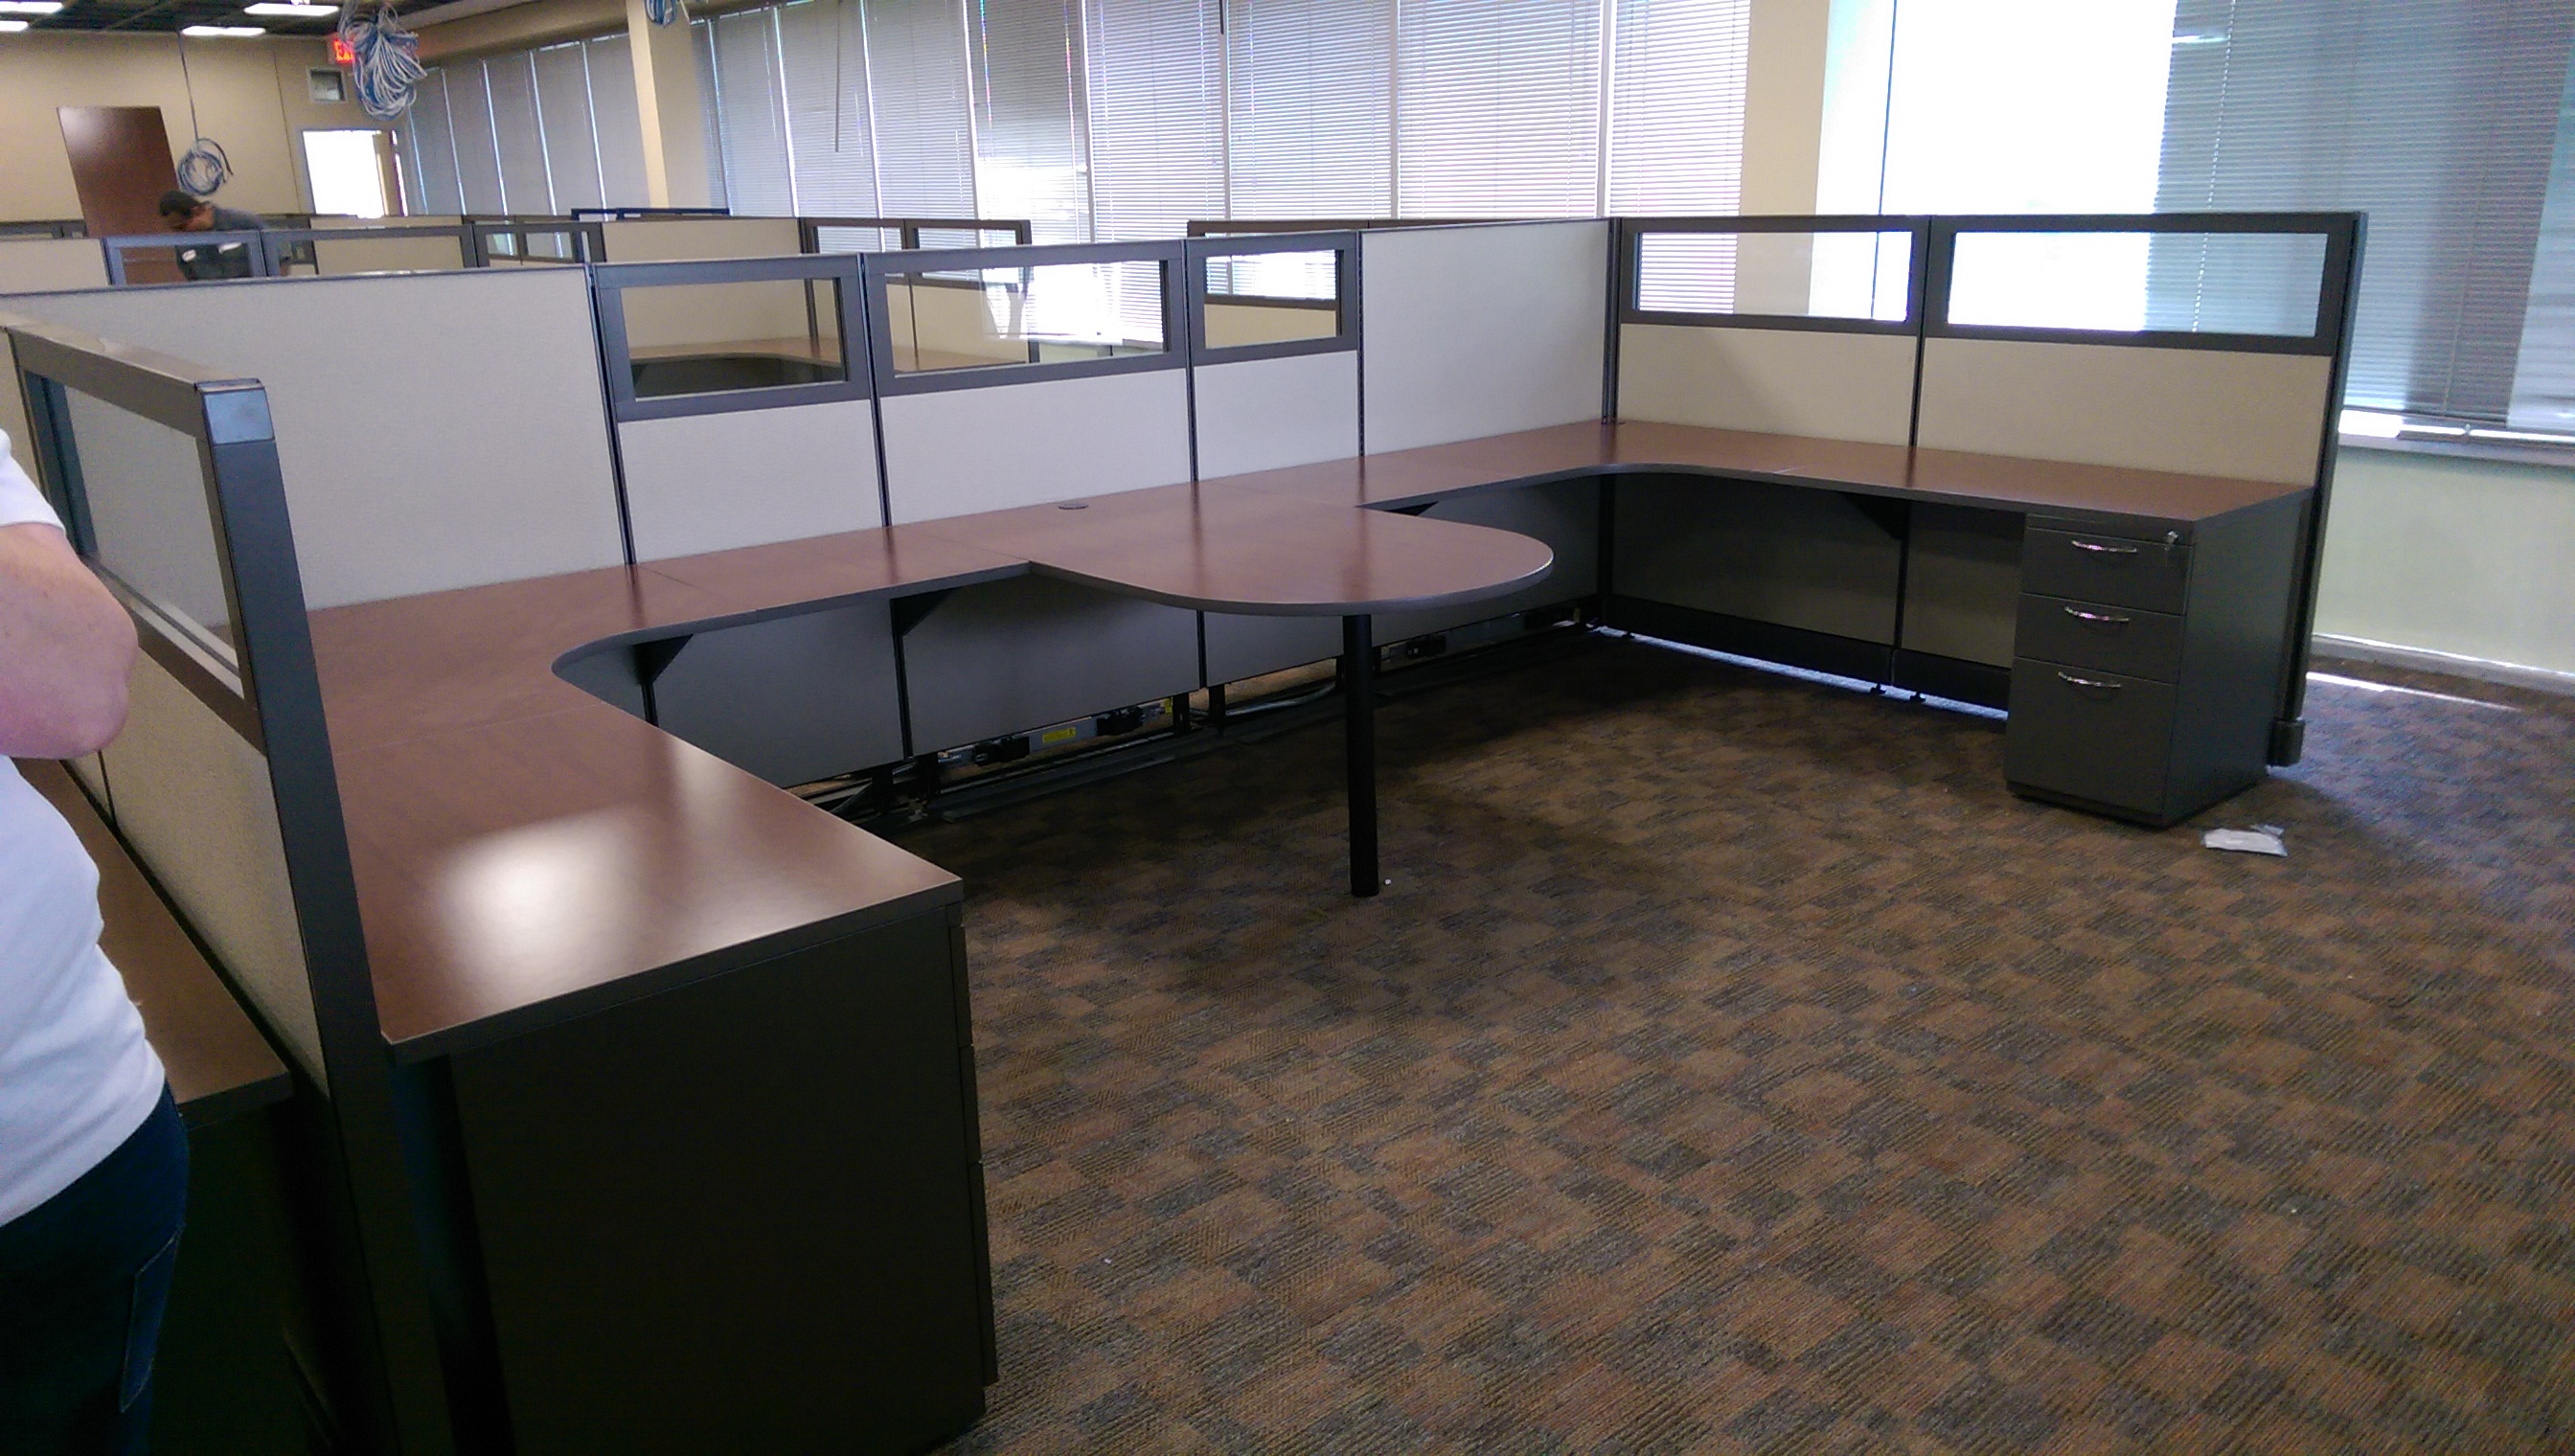 52 Office Furniture American Warehouse Ccustom Office Furniture Cubicles Salesteelcase